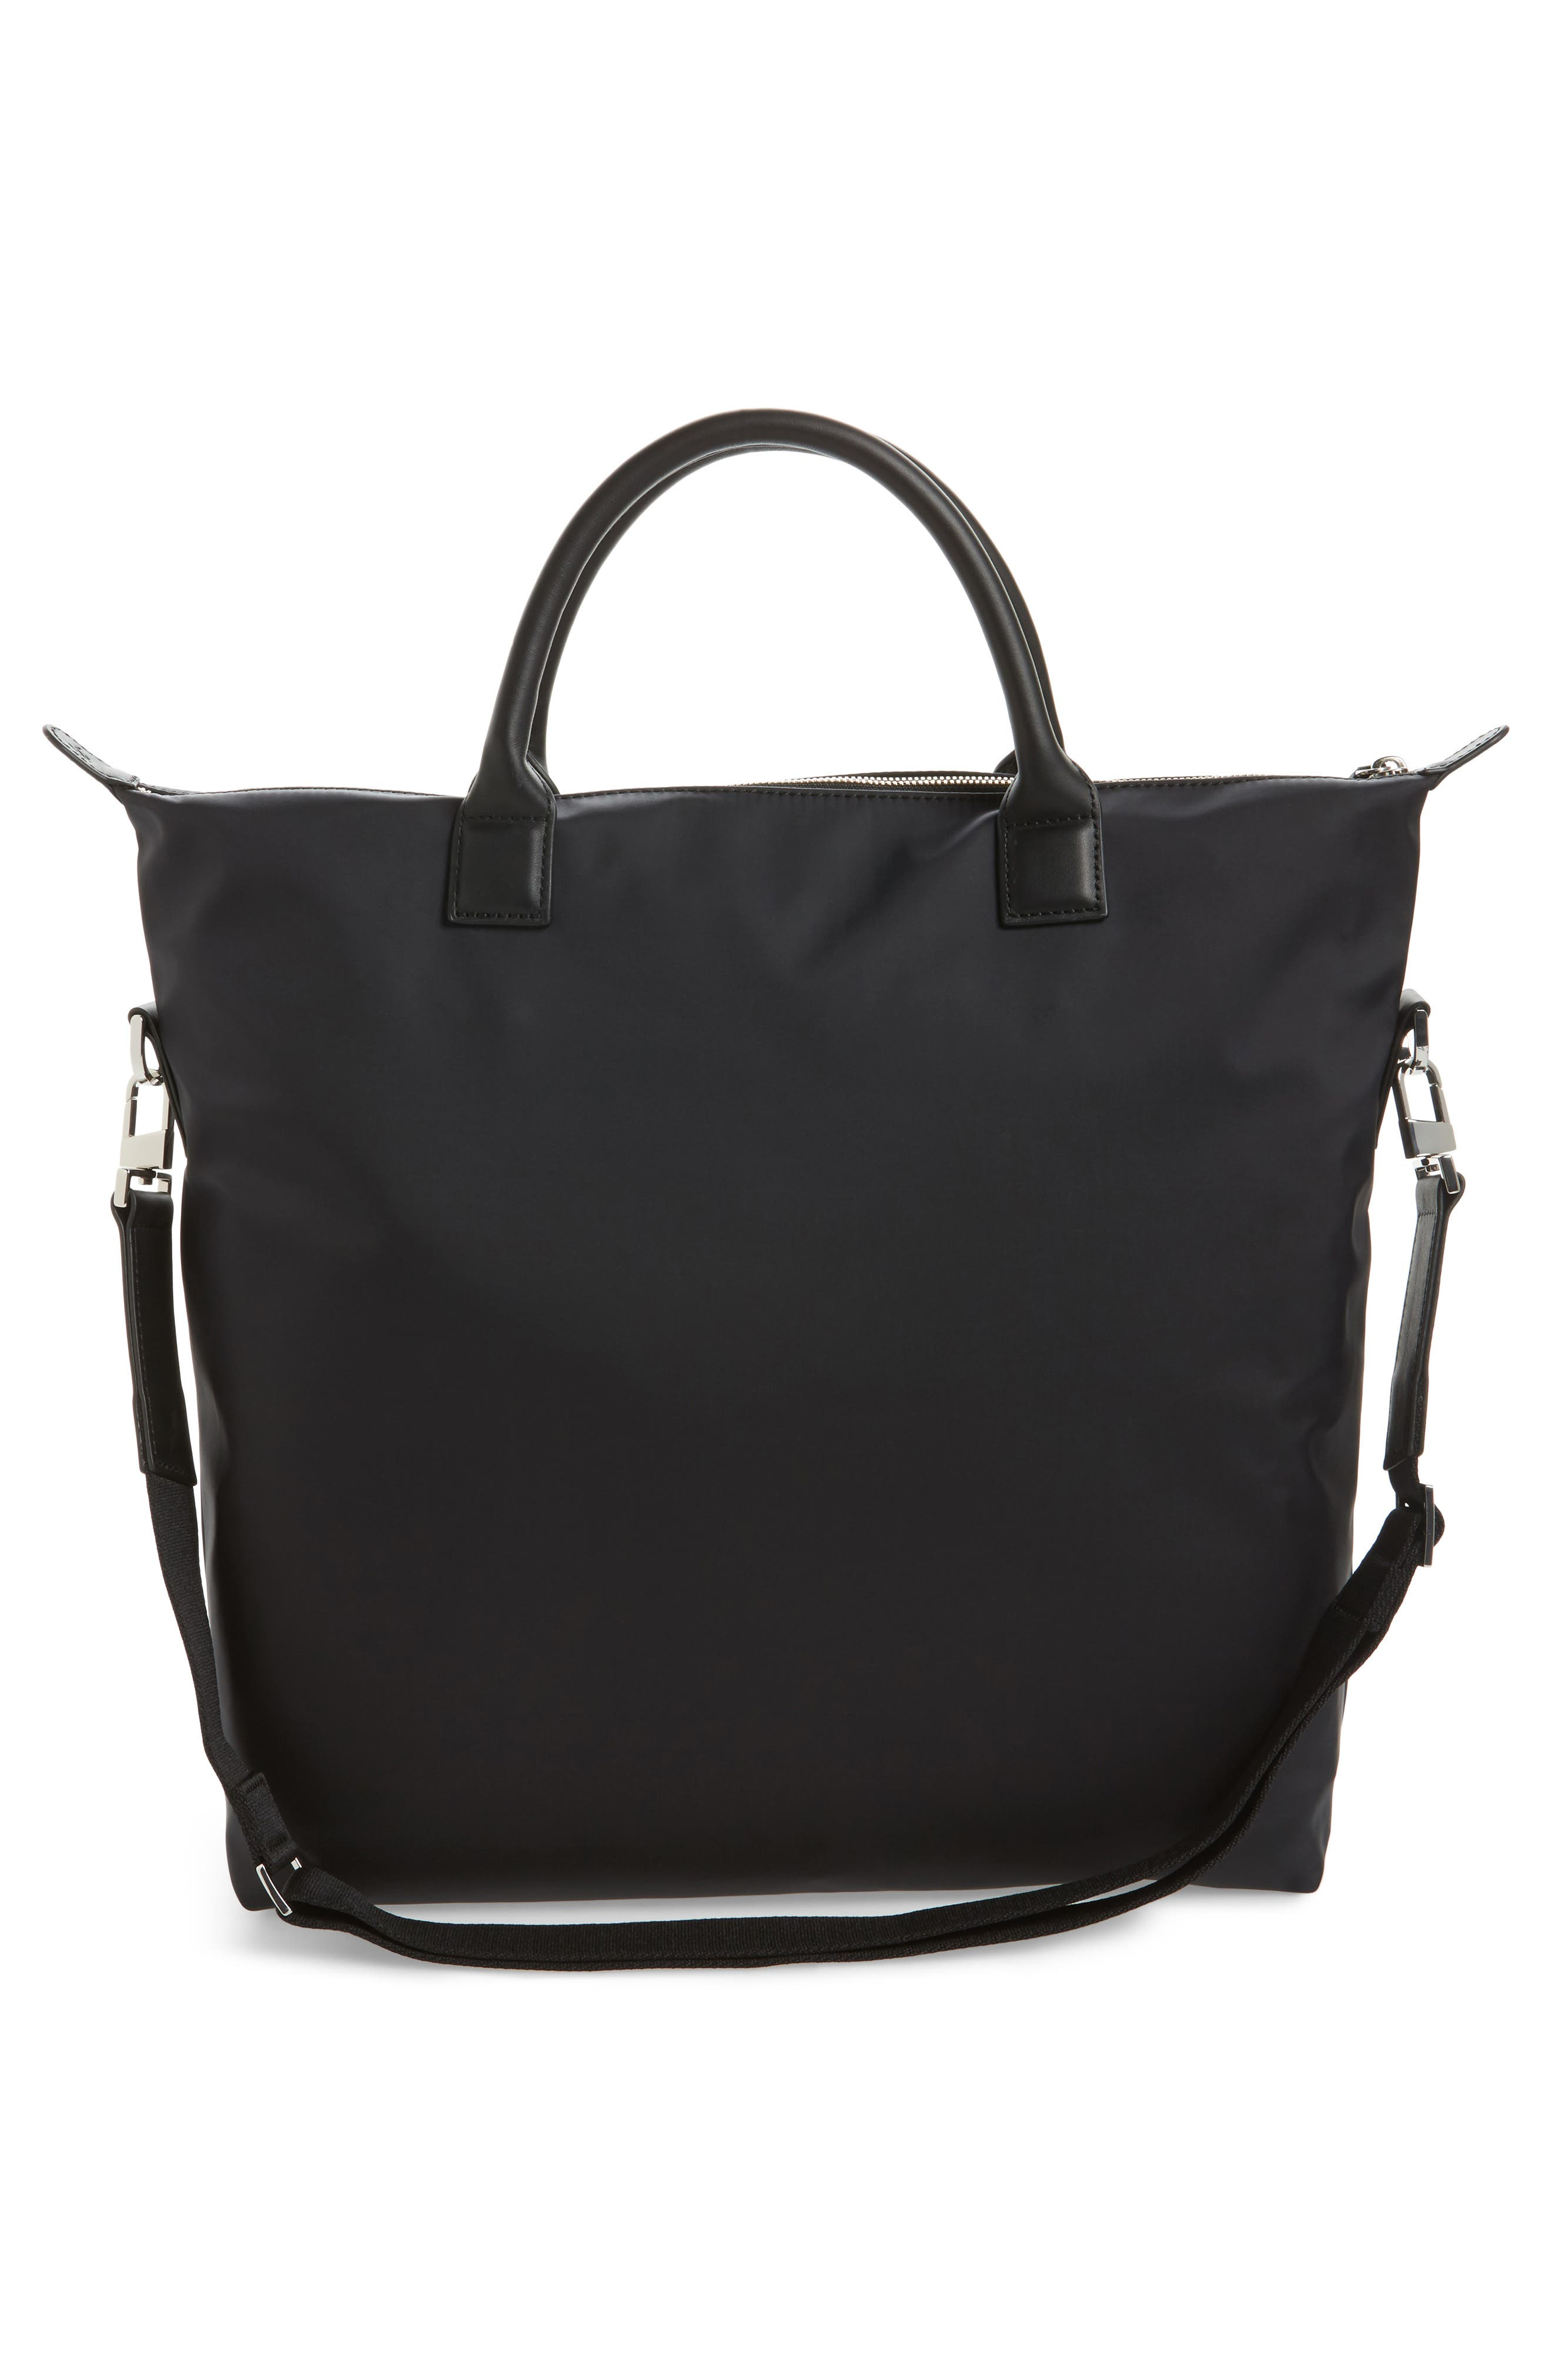 O'Hare Shopper Tote,                             Alternate thumbnail 3, color,                             001